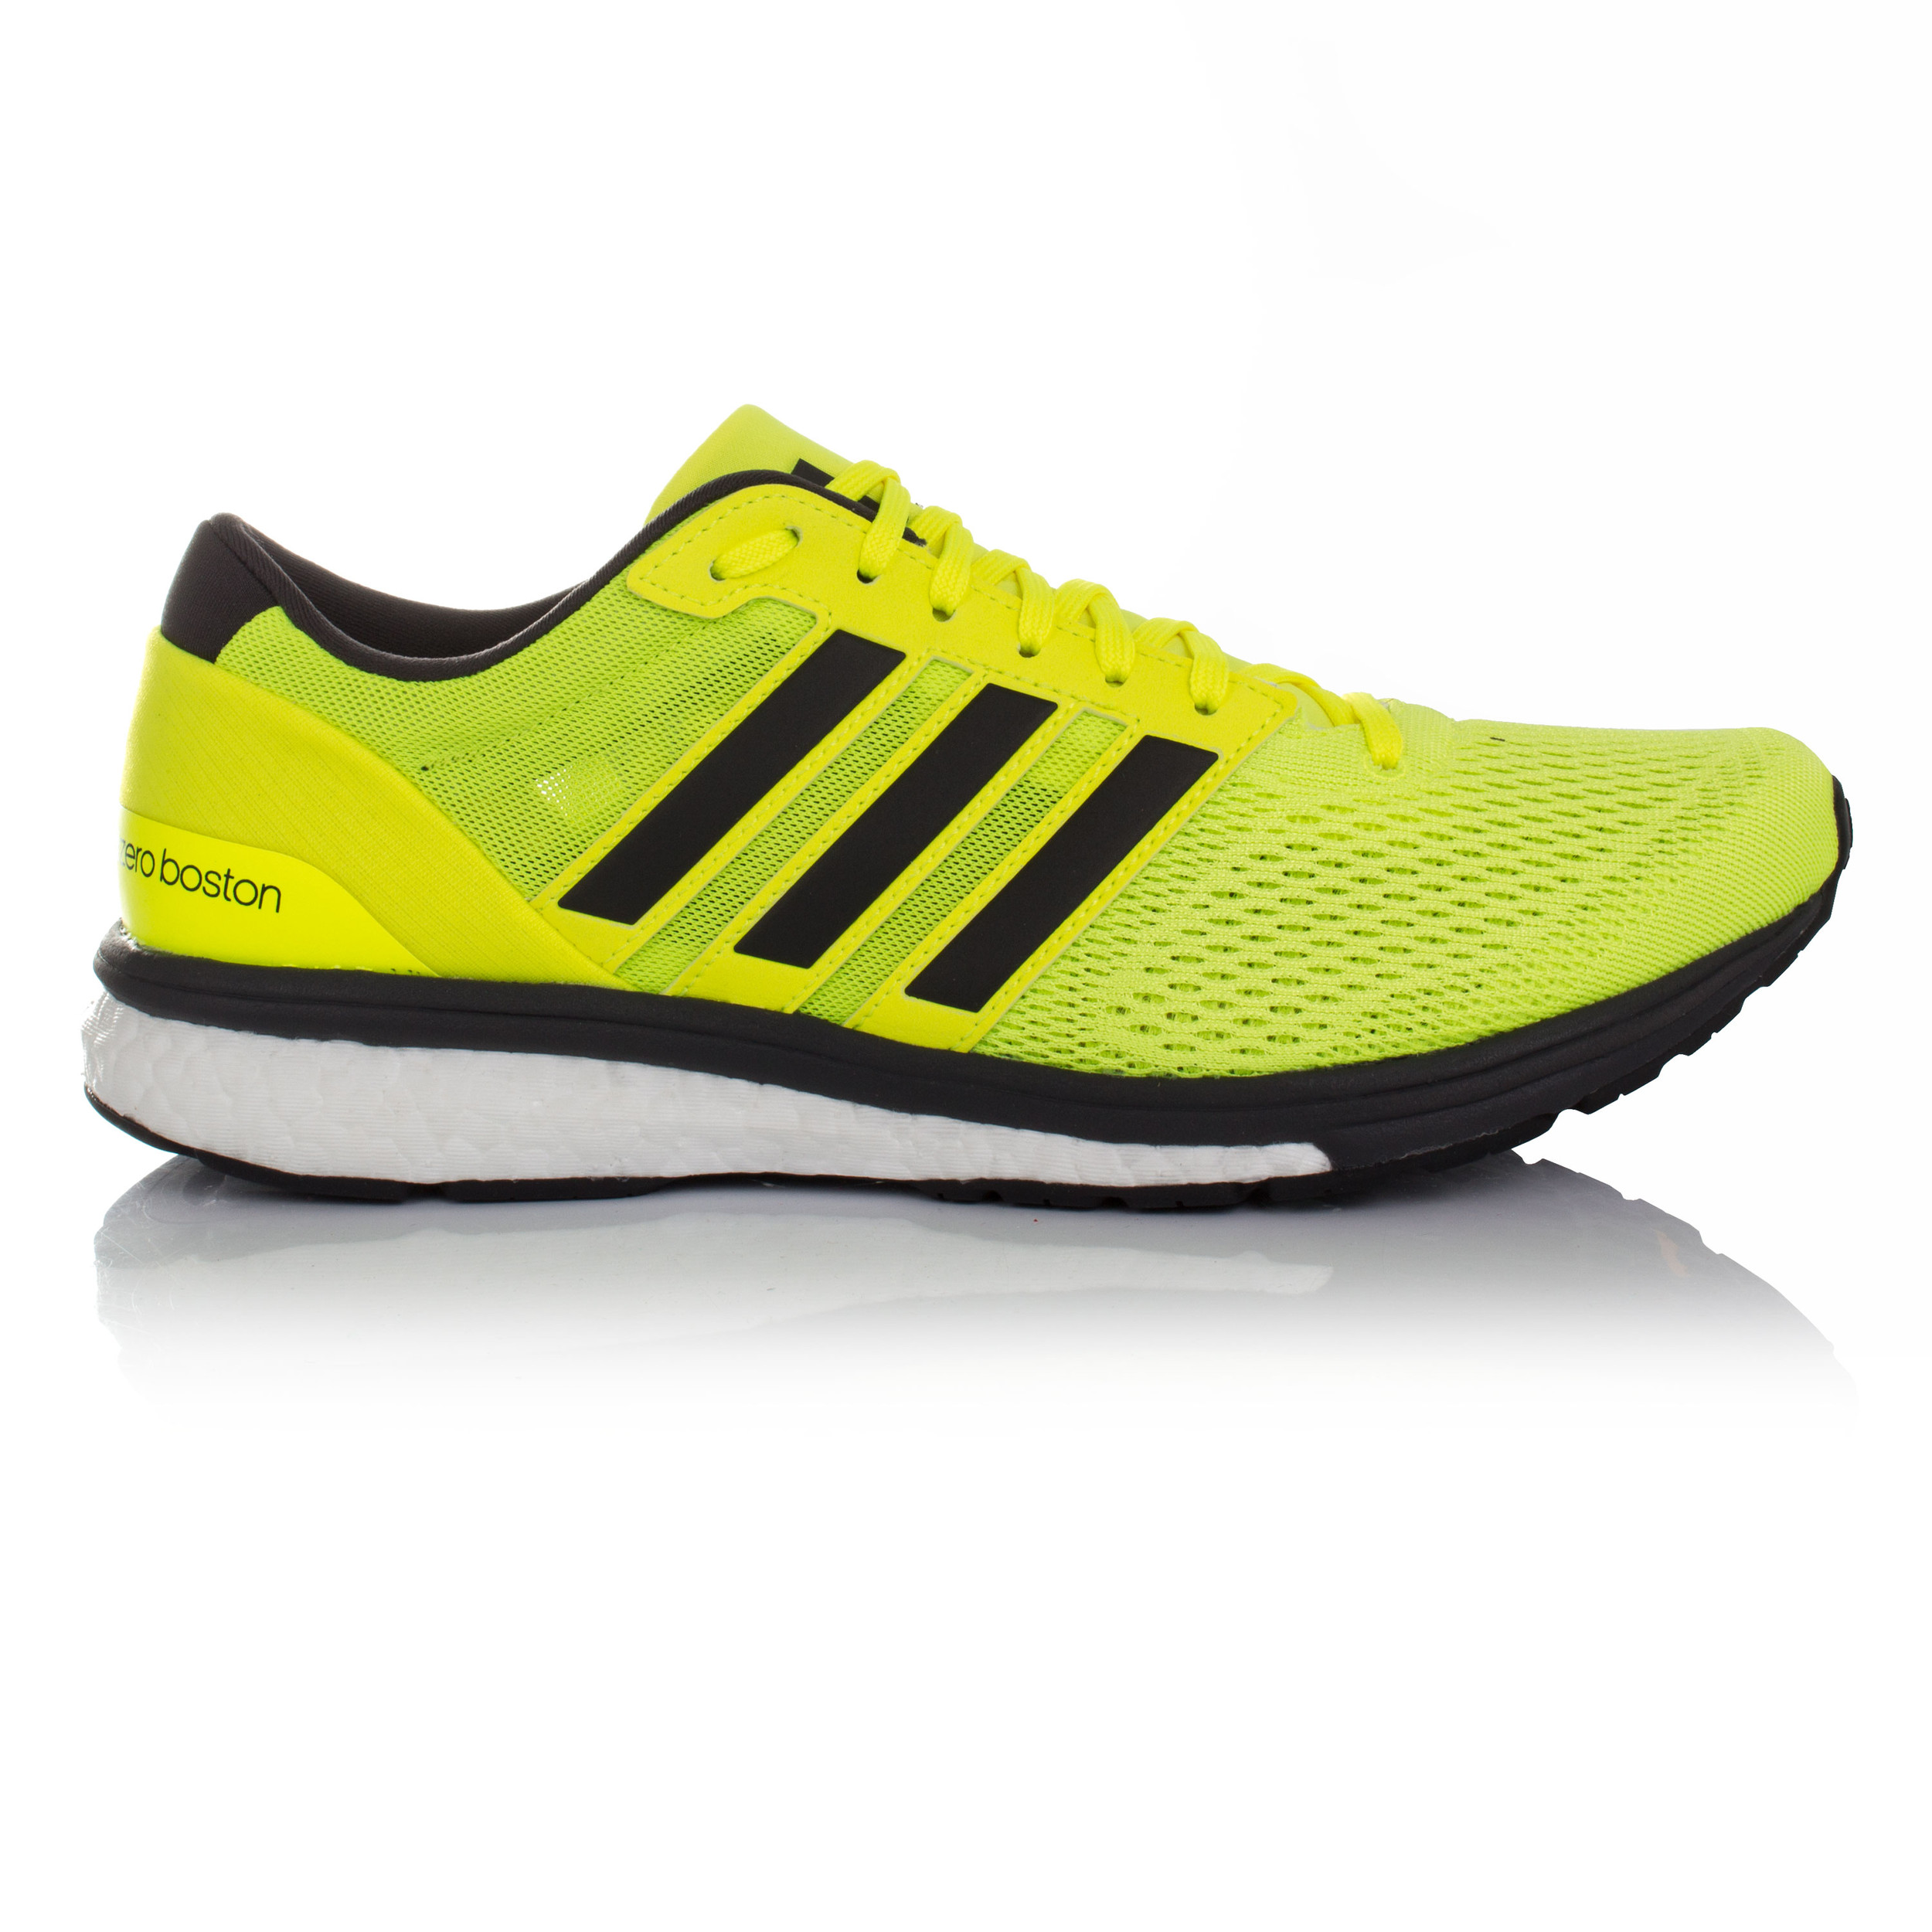 Adidas Adizero Boston 6 Mens Yellow Running Sports Shoes